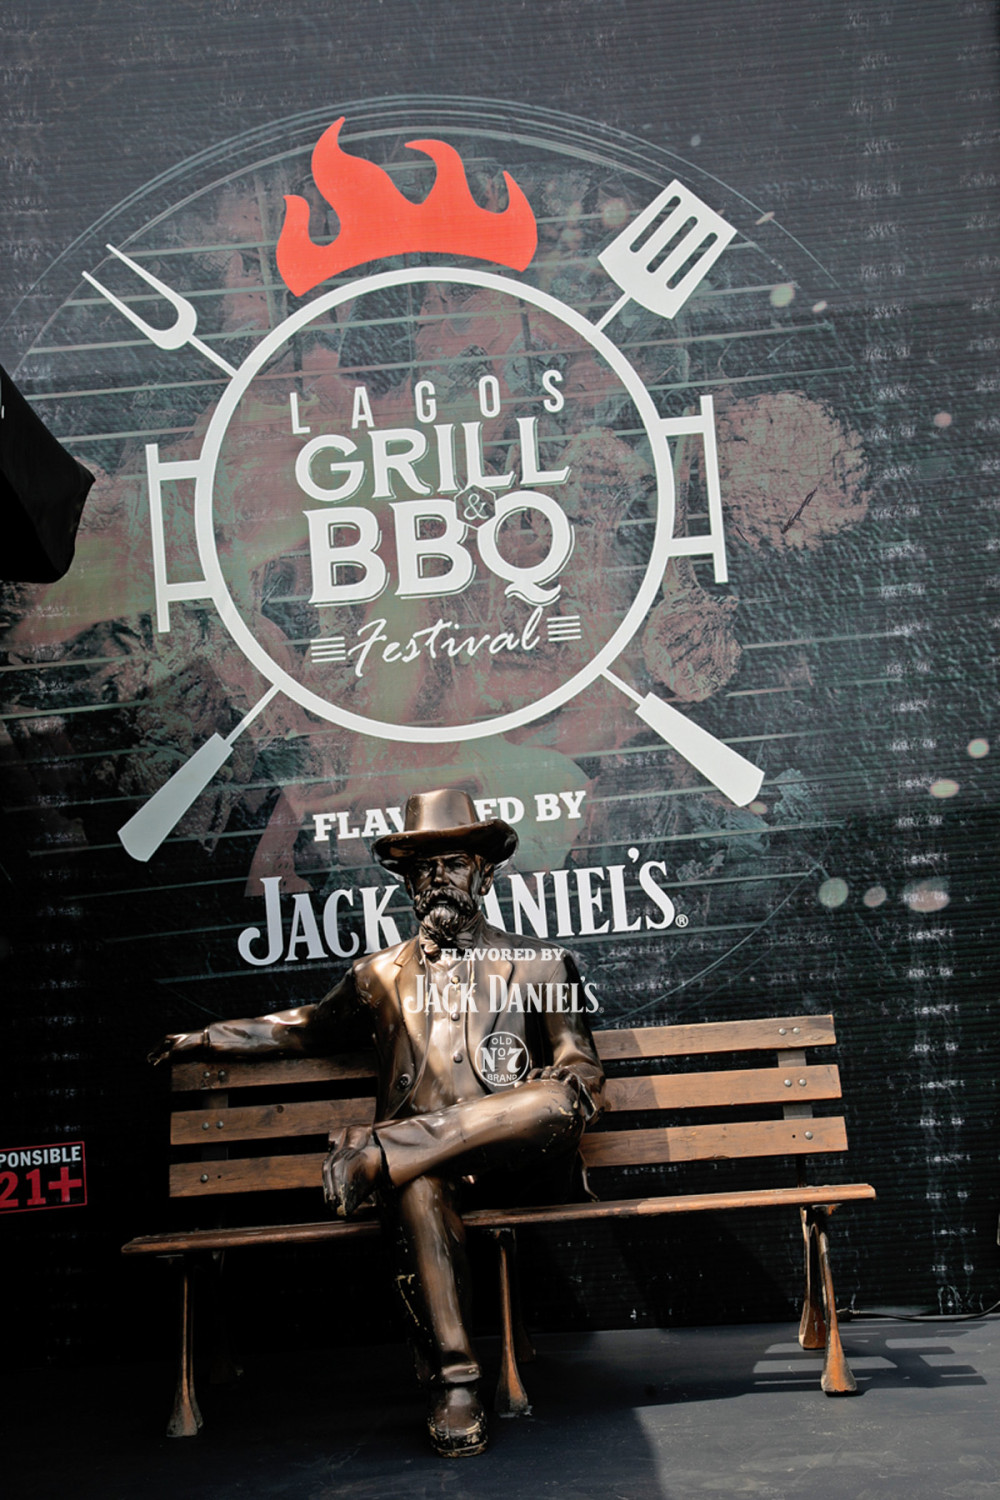 Lagos Grill & BBQ Festival 2016 flavoured by Jack Daniel's FX4A0652